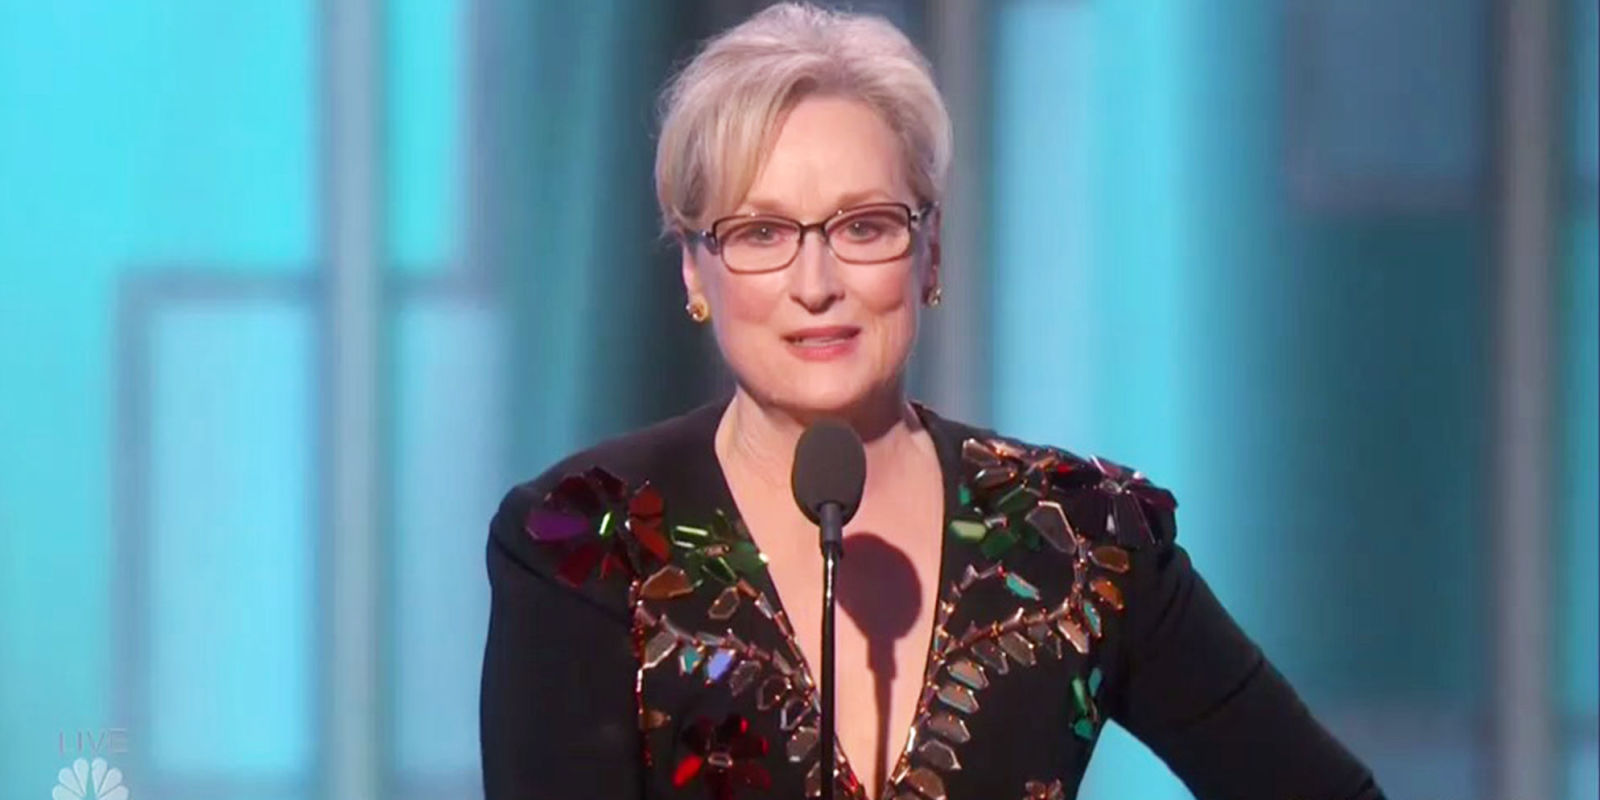 Meryl Streep Talks Donald Trump at the Golden Globes